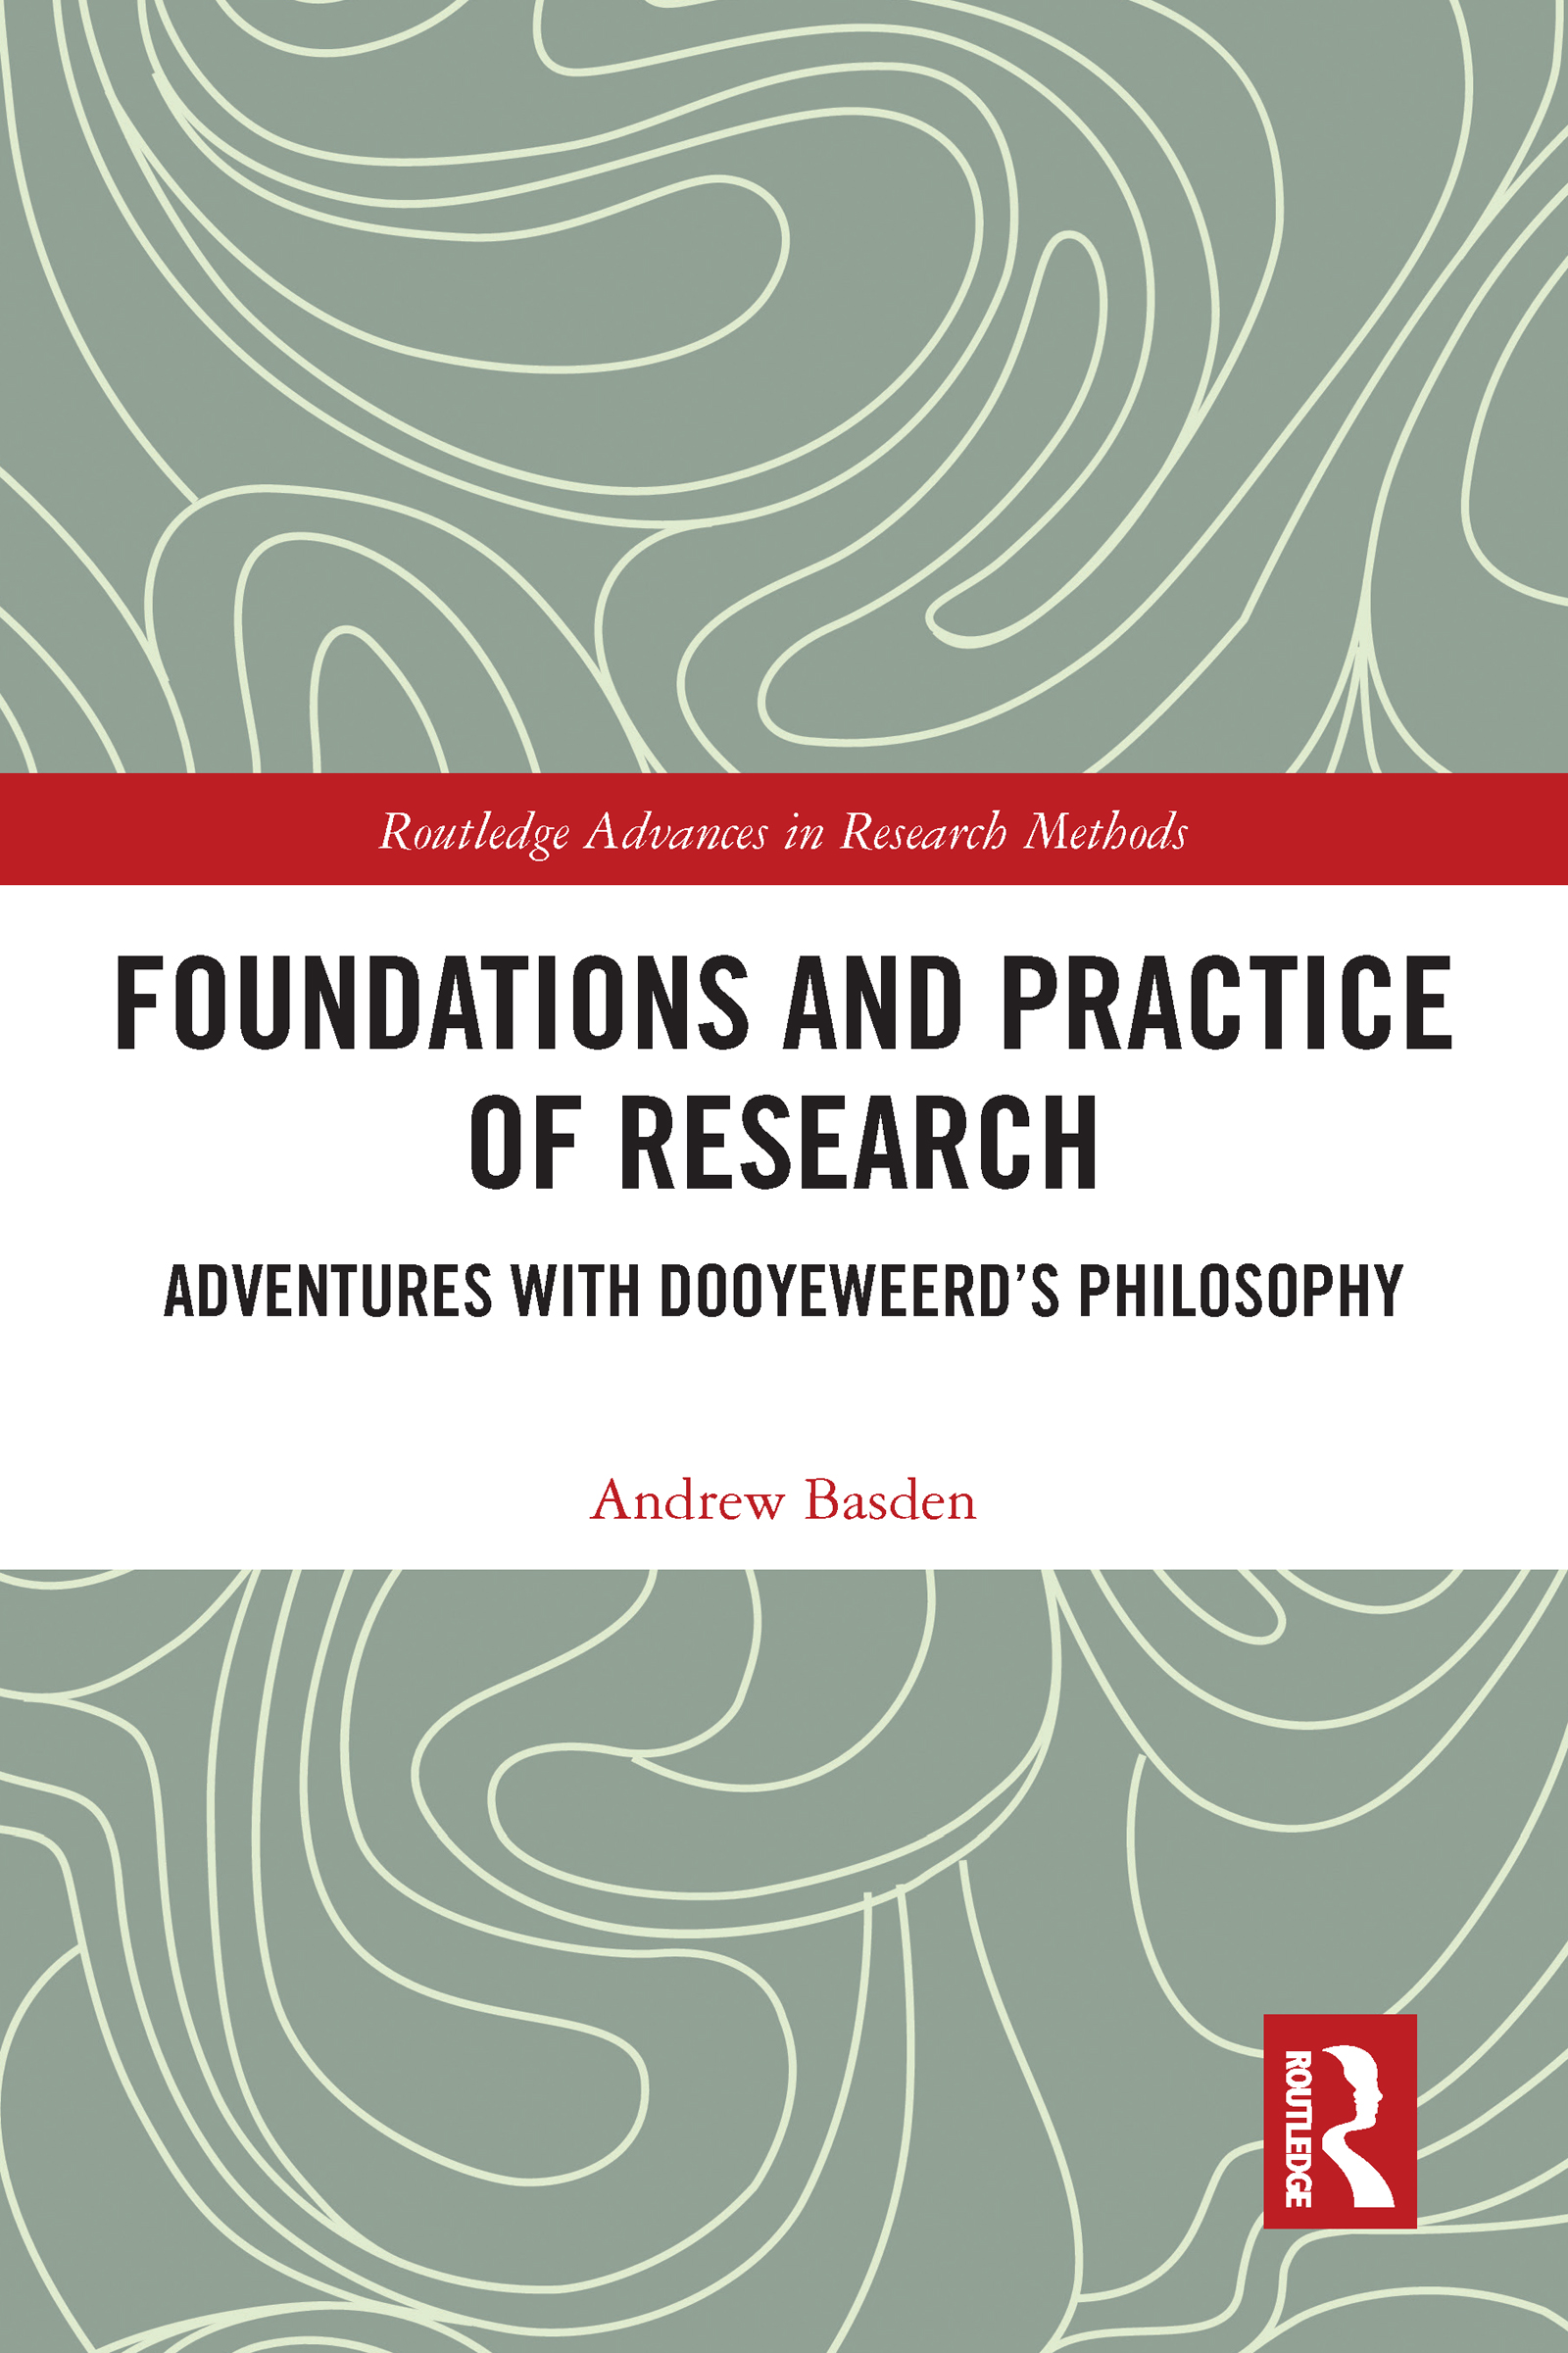 Foundations and Practice of Research